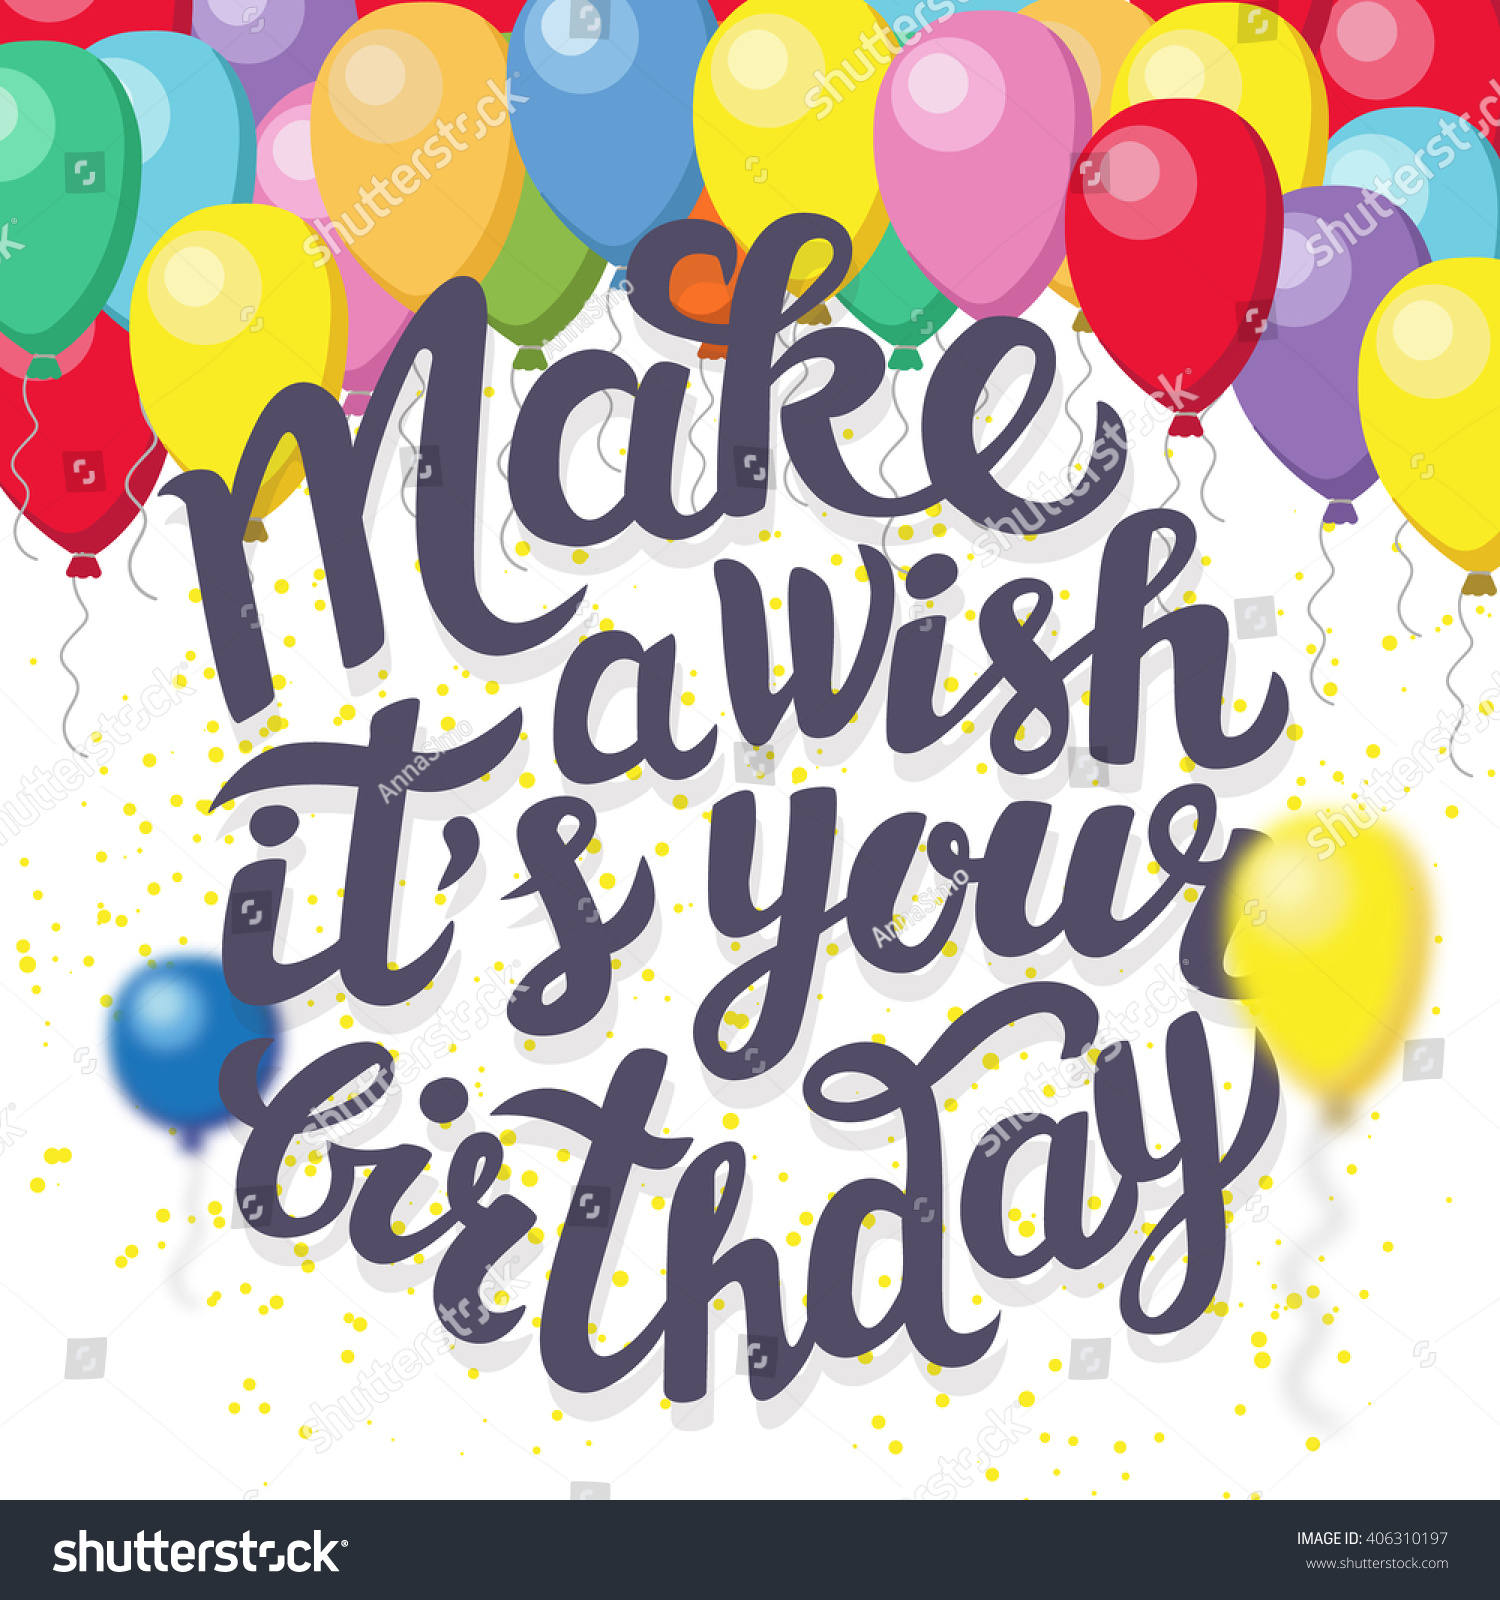 Happy Birthday Greeting Poster With Lettering Make A Happy Birthday Make A Wish